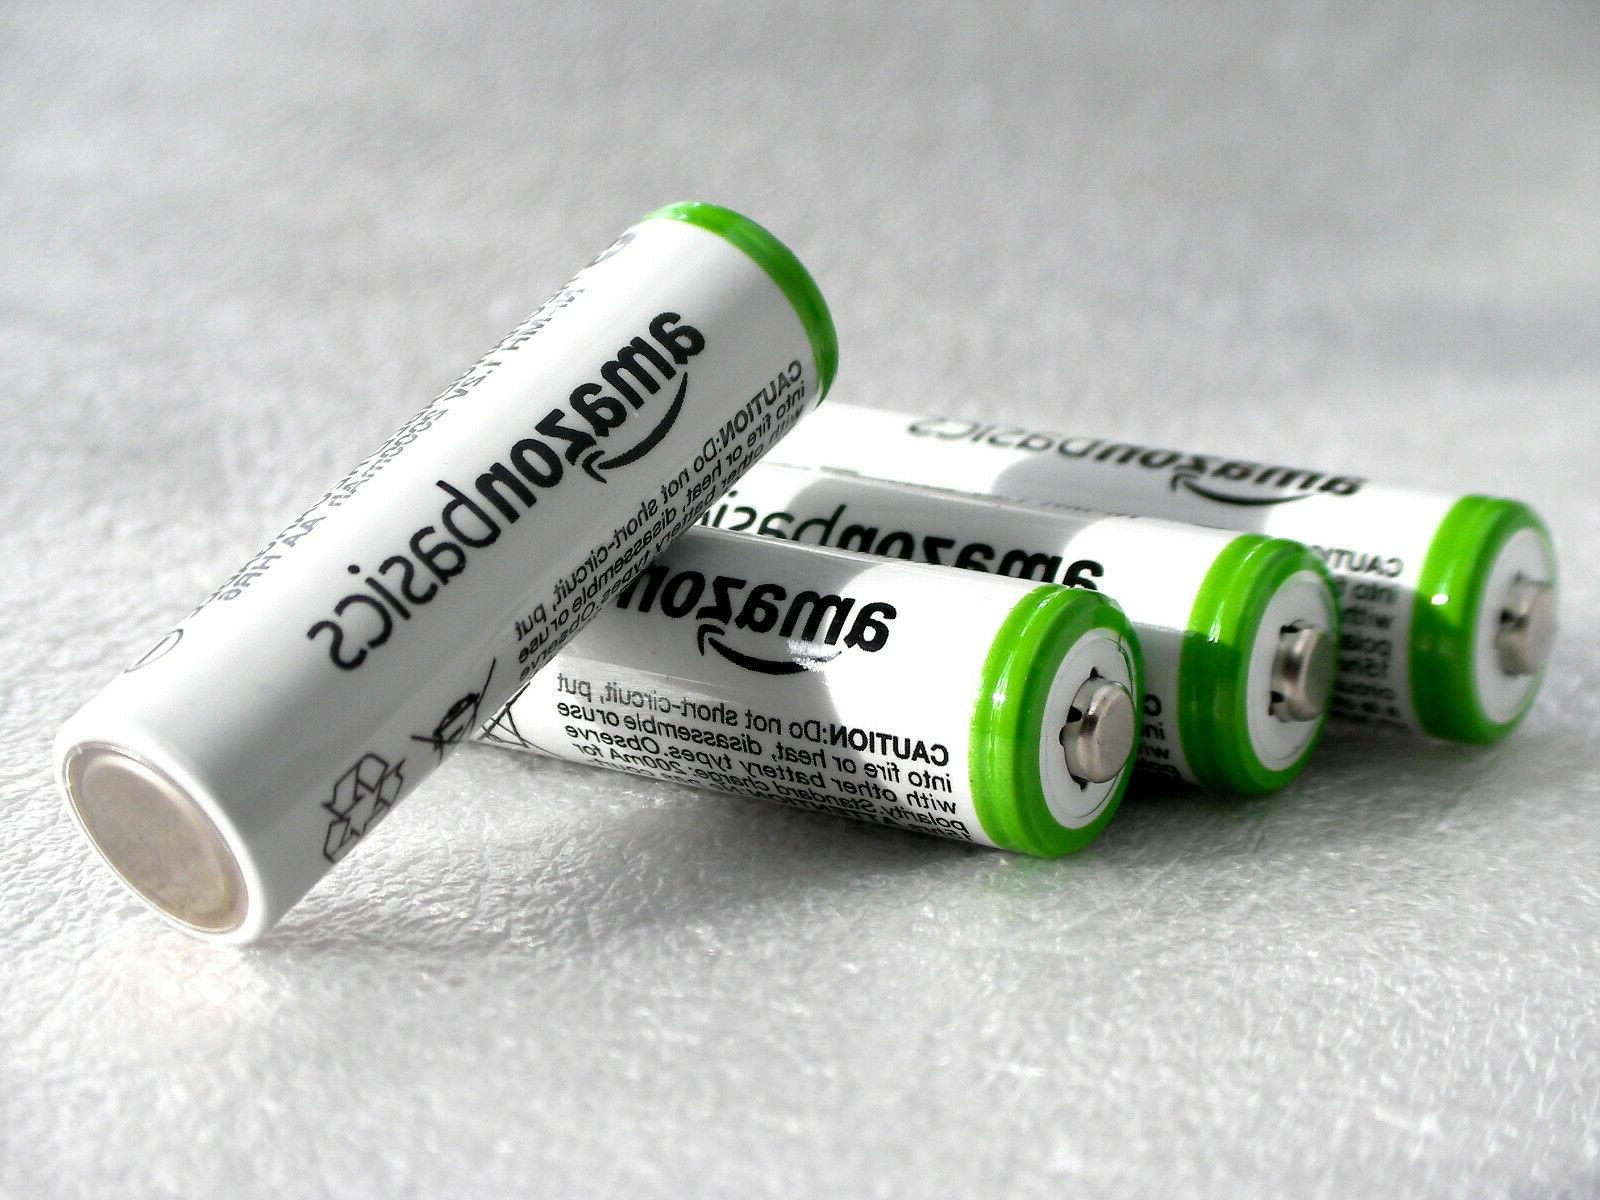 aa rechargeable nimh batteries 2000mah 4 pack